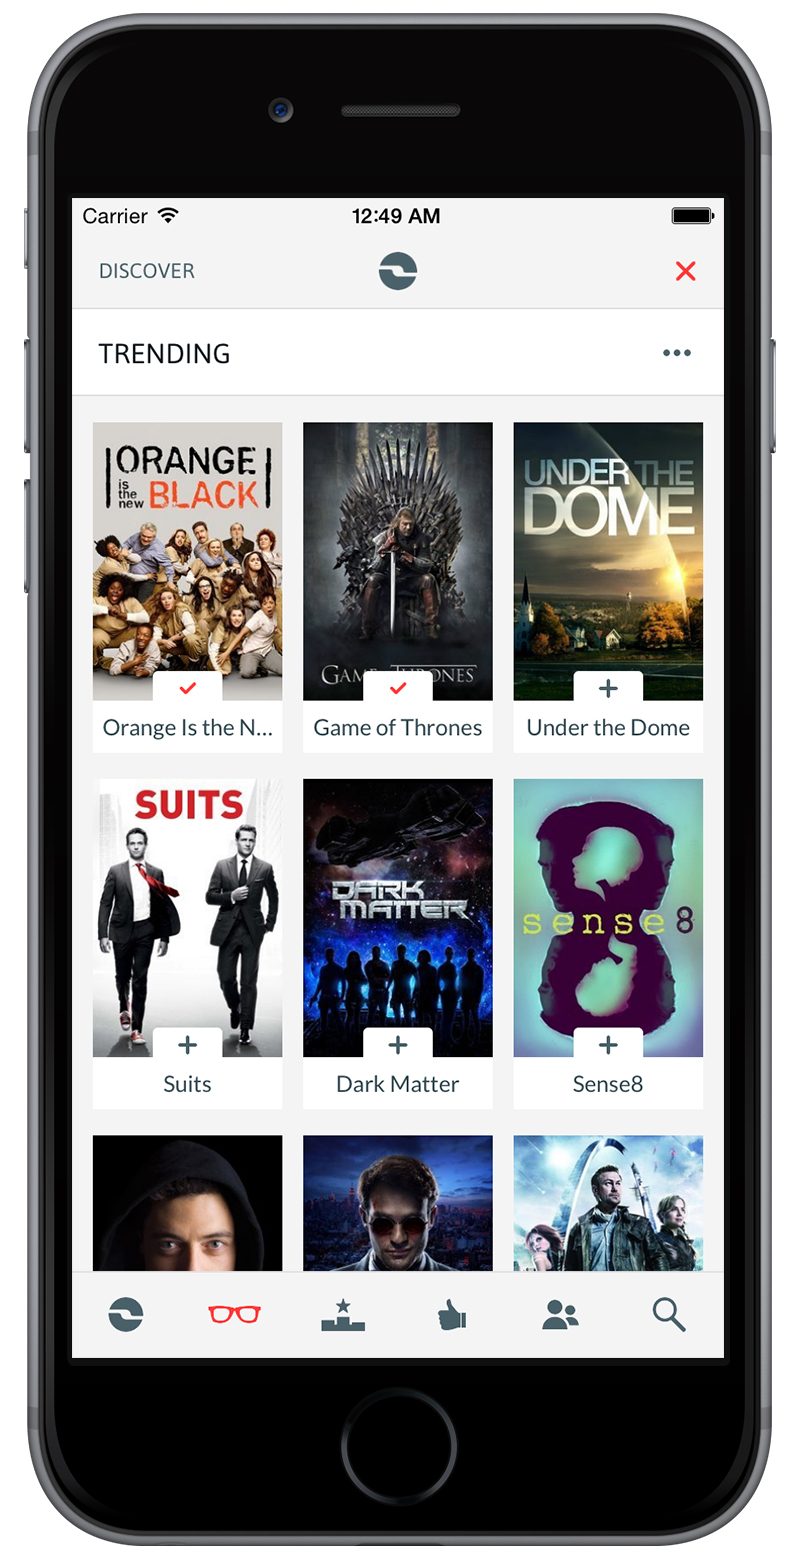 iShows 2 for iOS